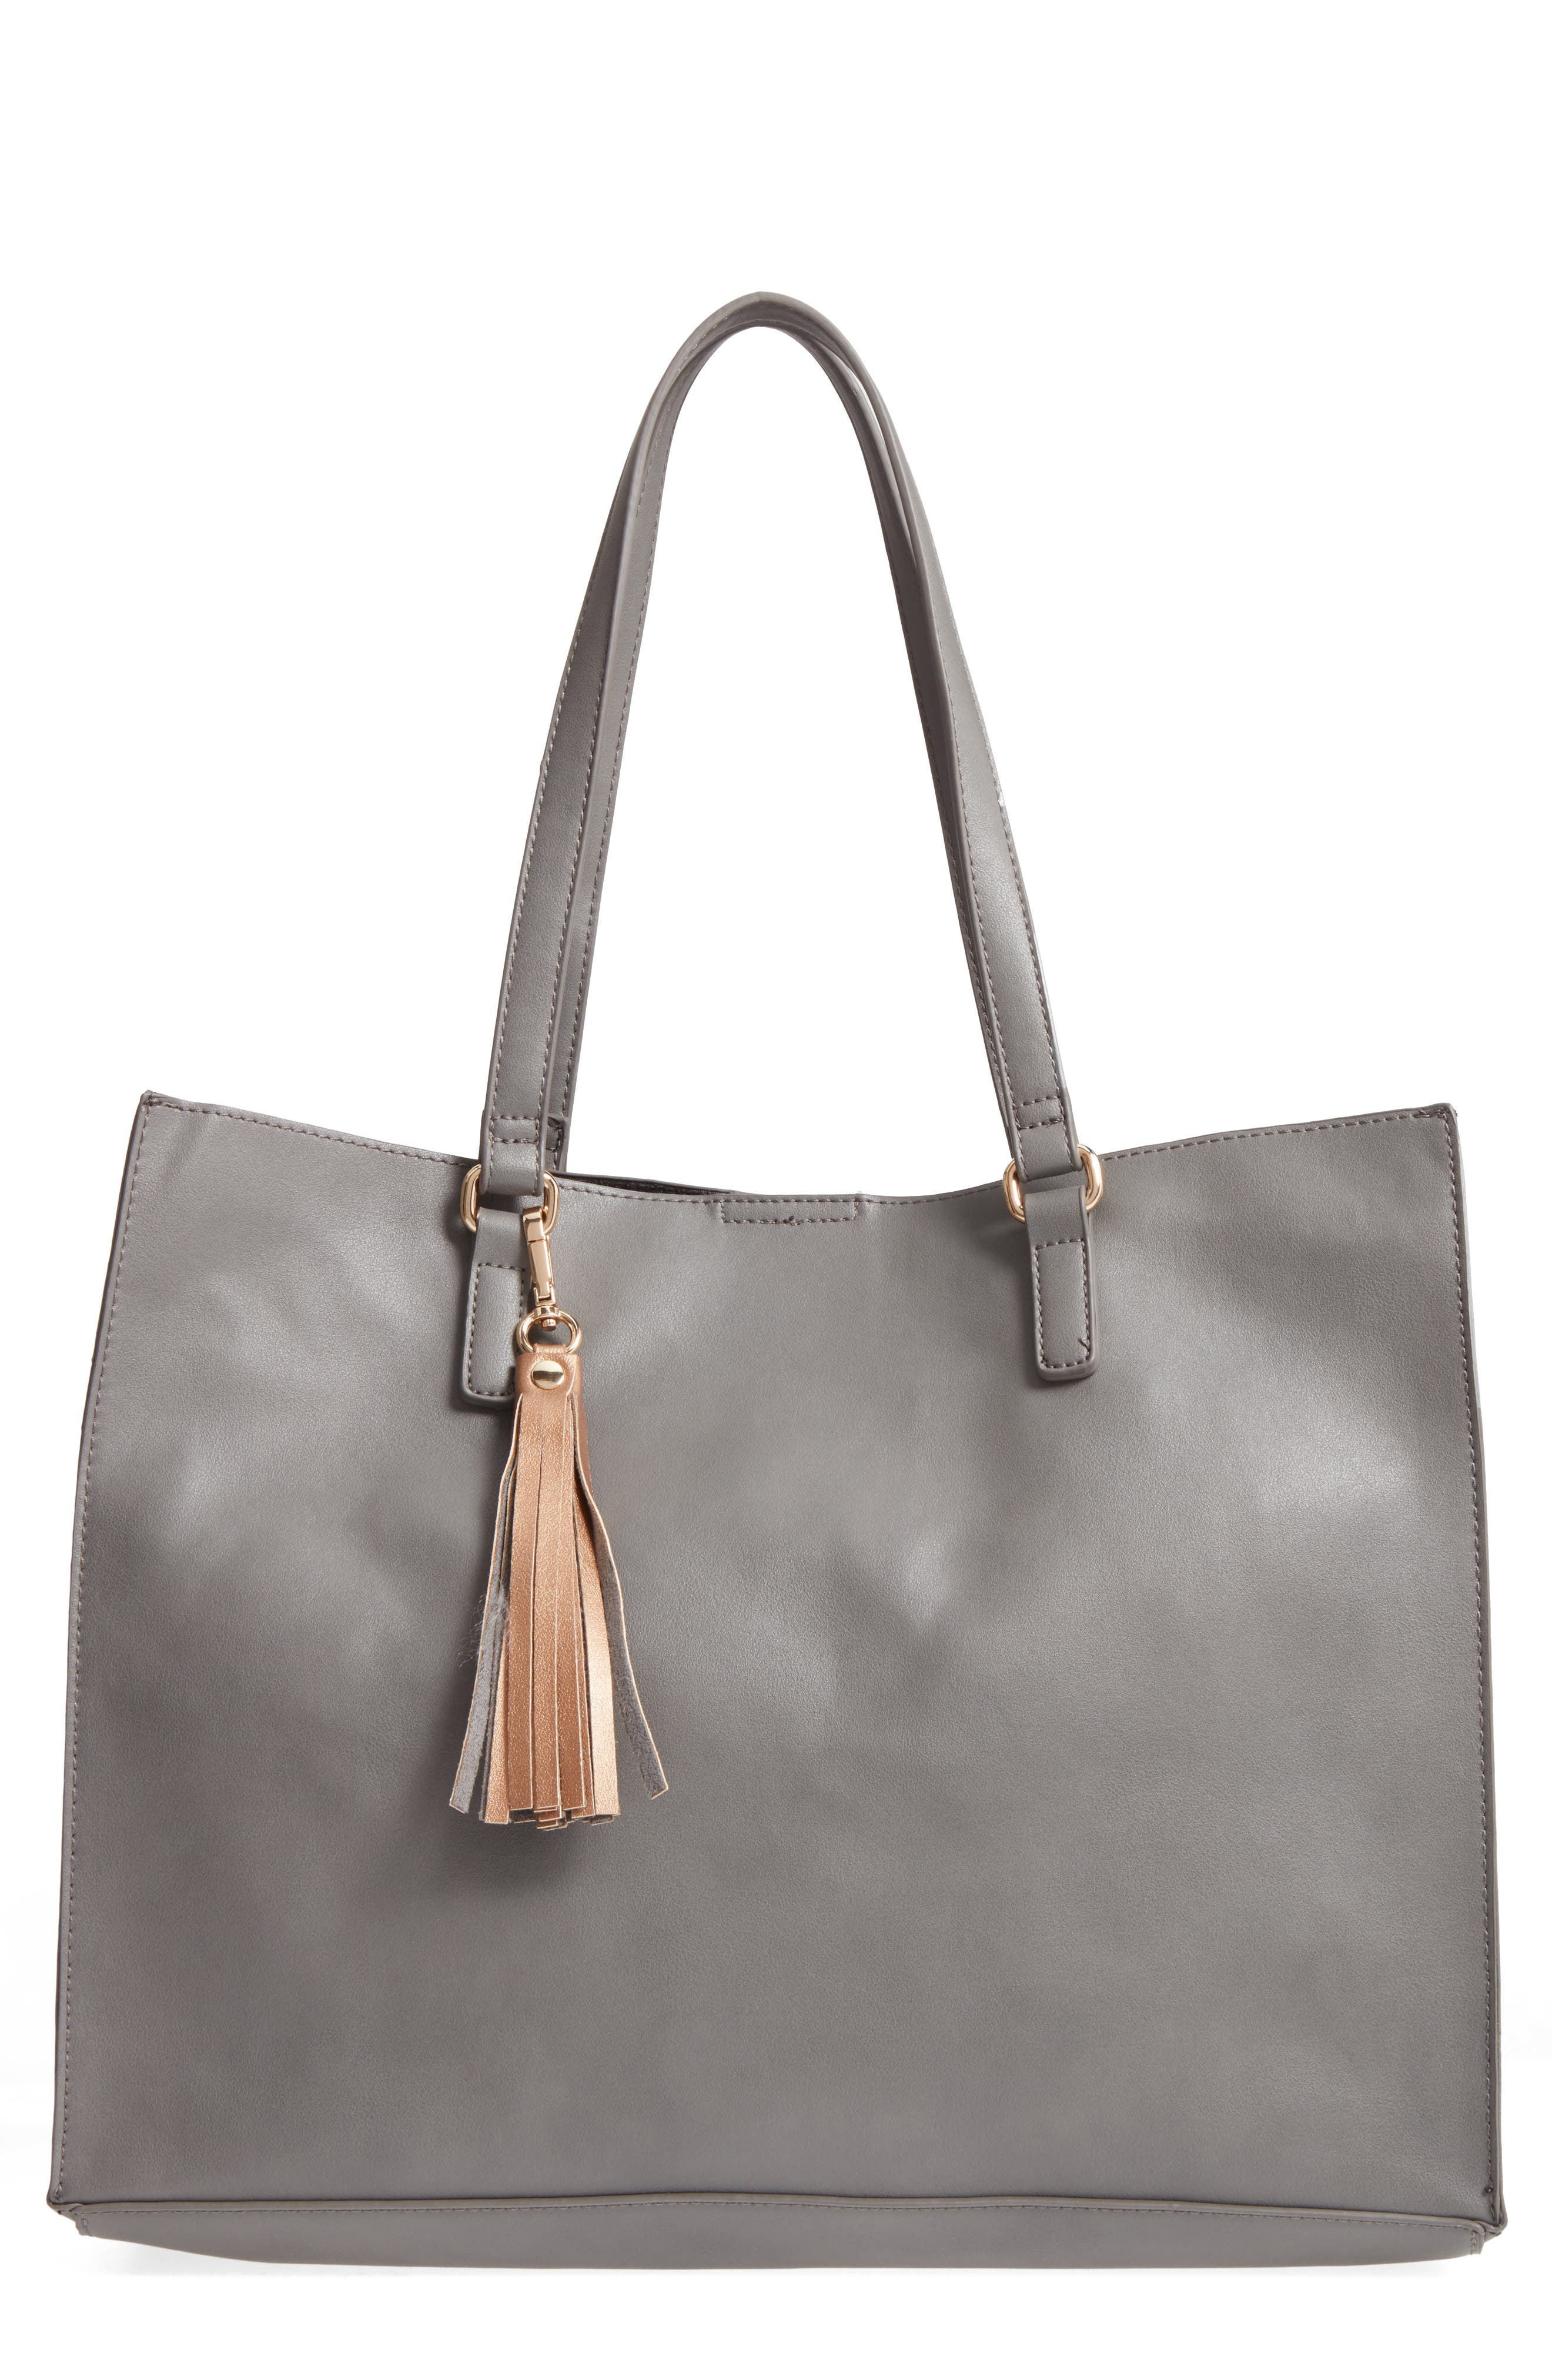 Silver leather tote bag uk - Faux Leather Tote Pouch